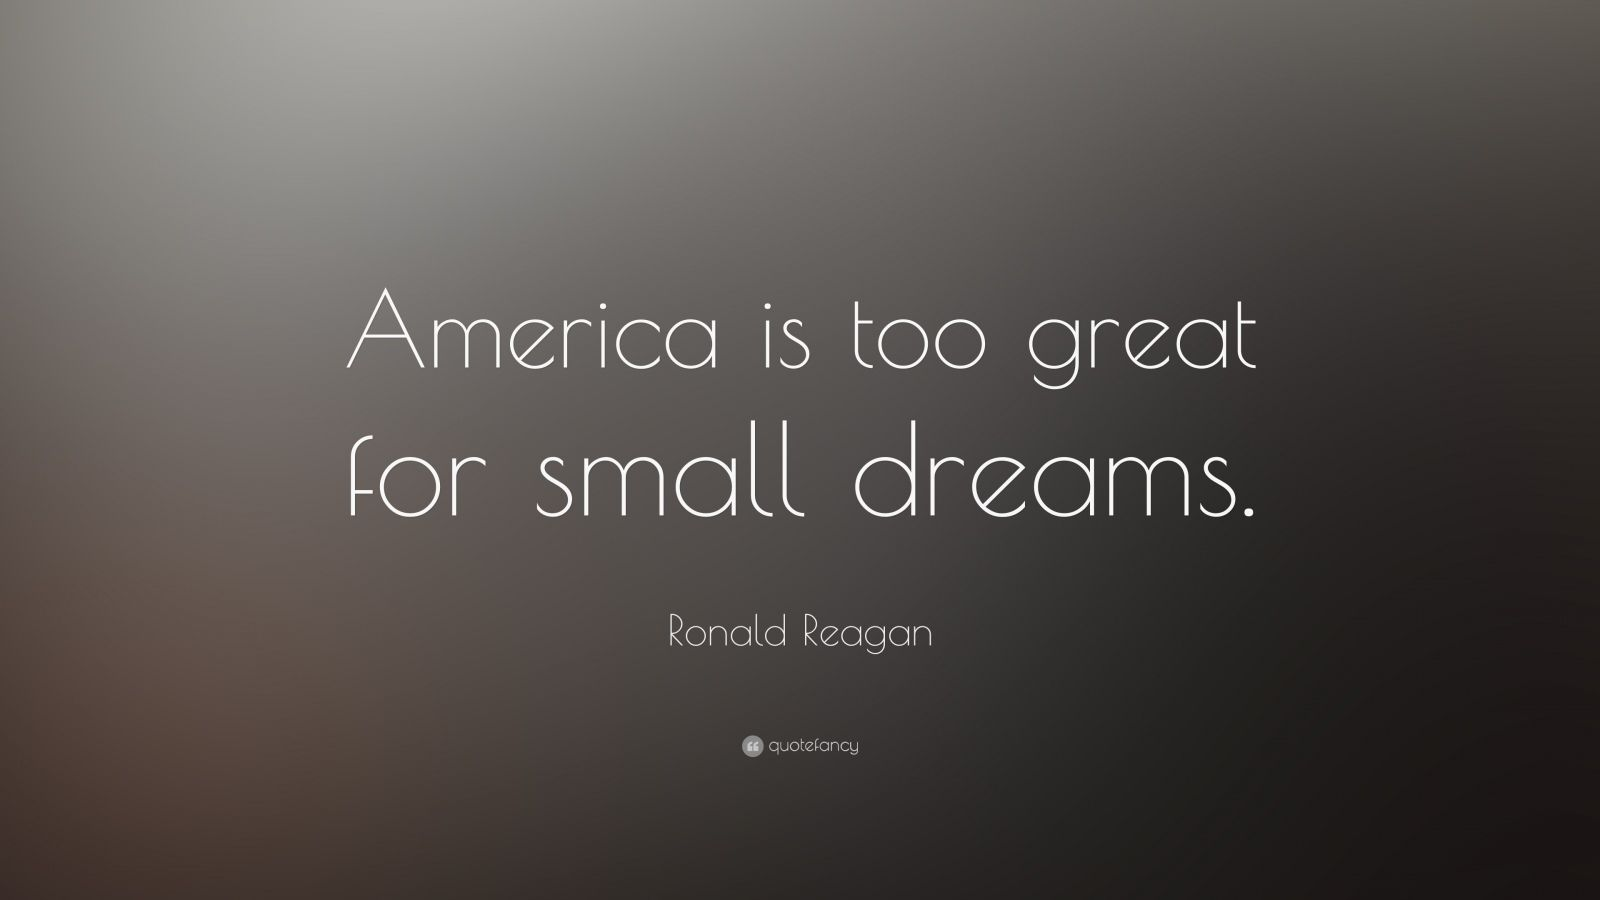 Aristotle Quotes Wallpaper Ronald Reagan Quote America Is Too Great For Small